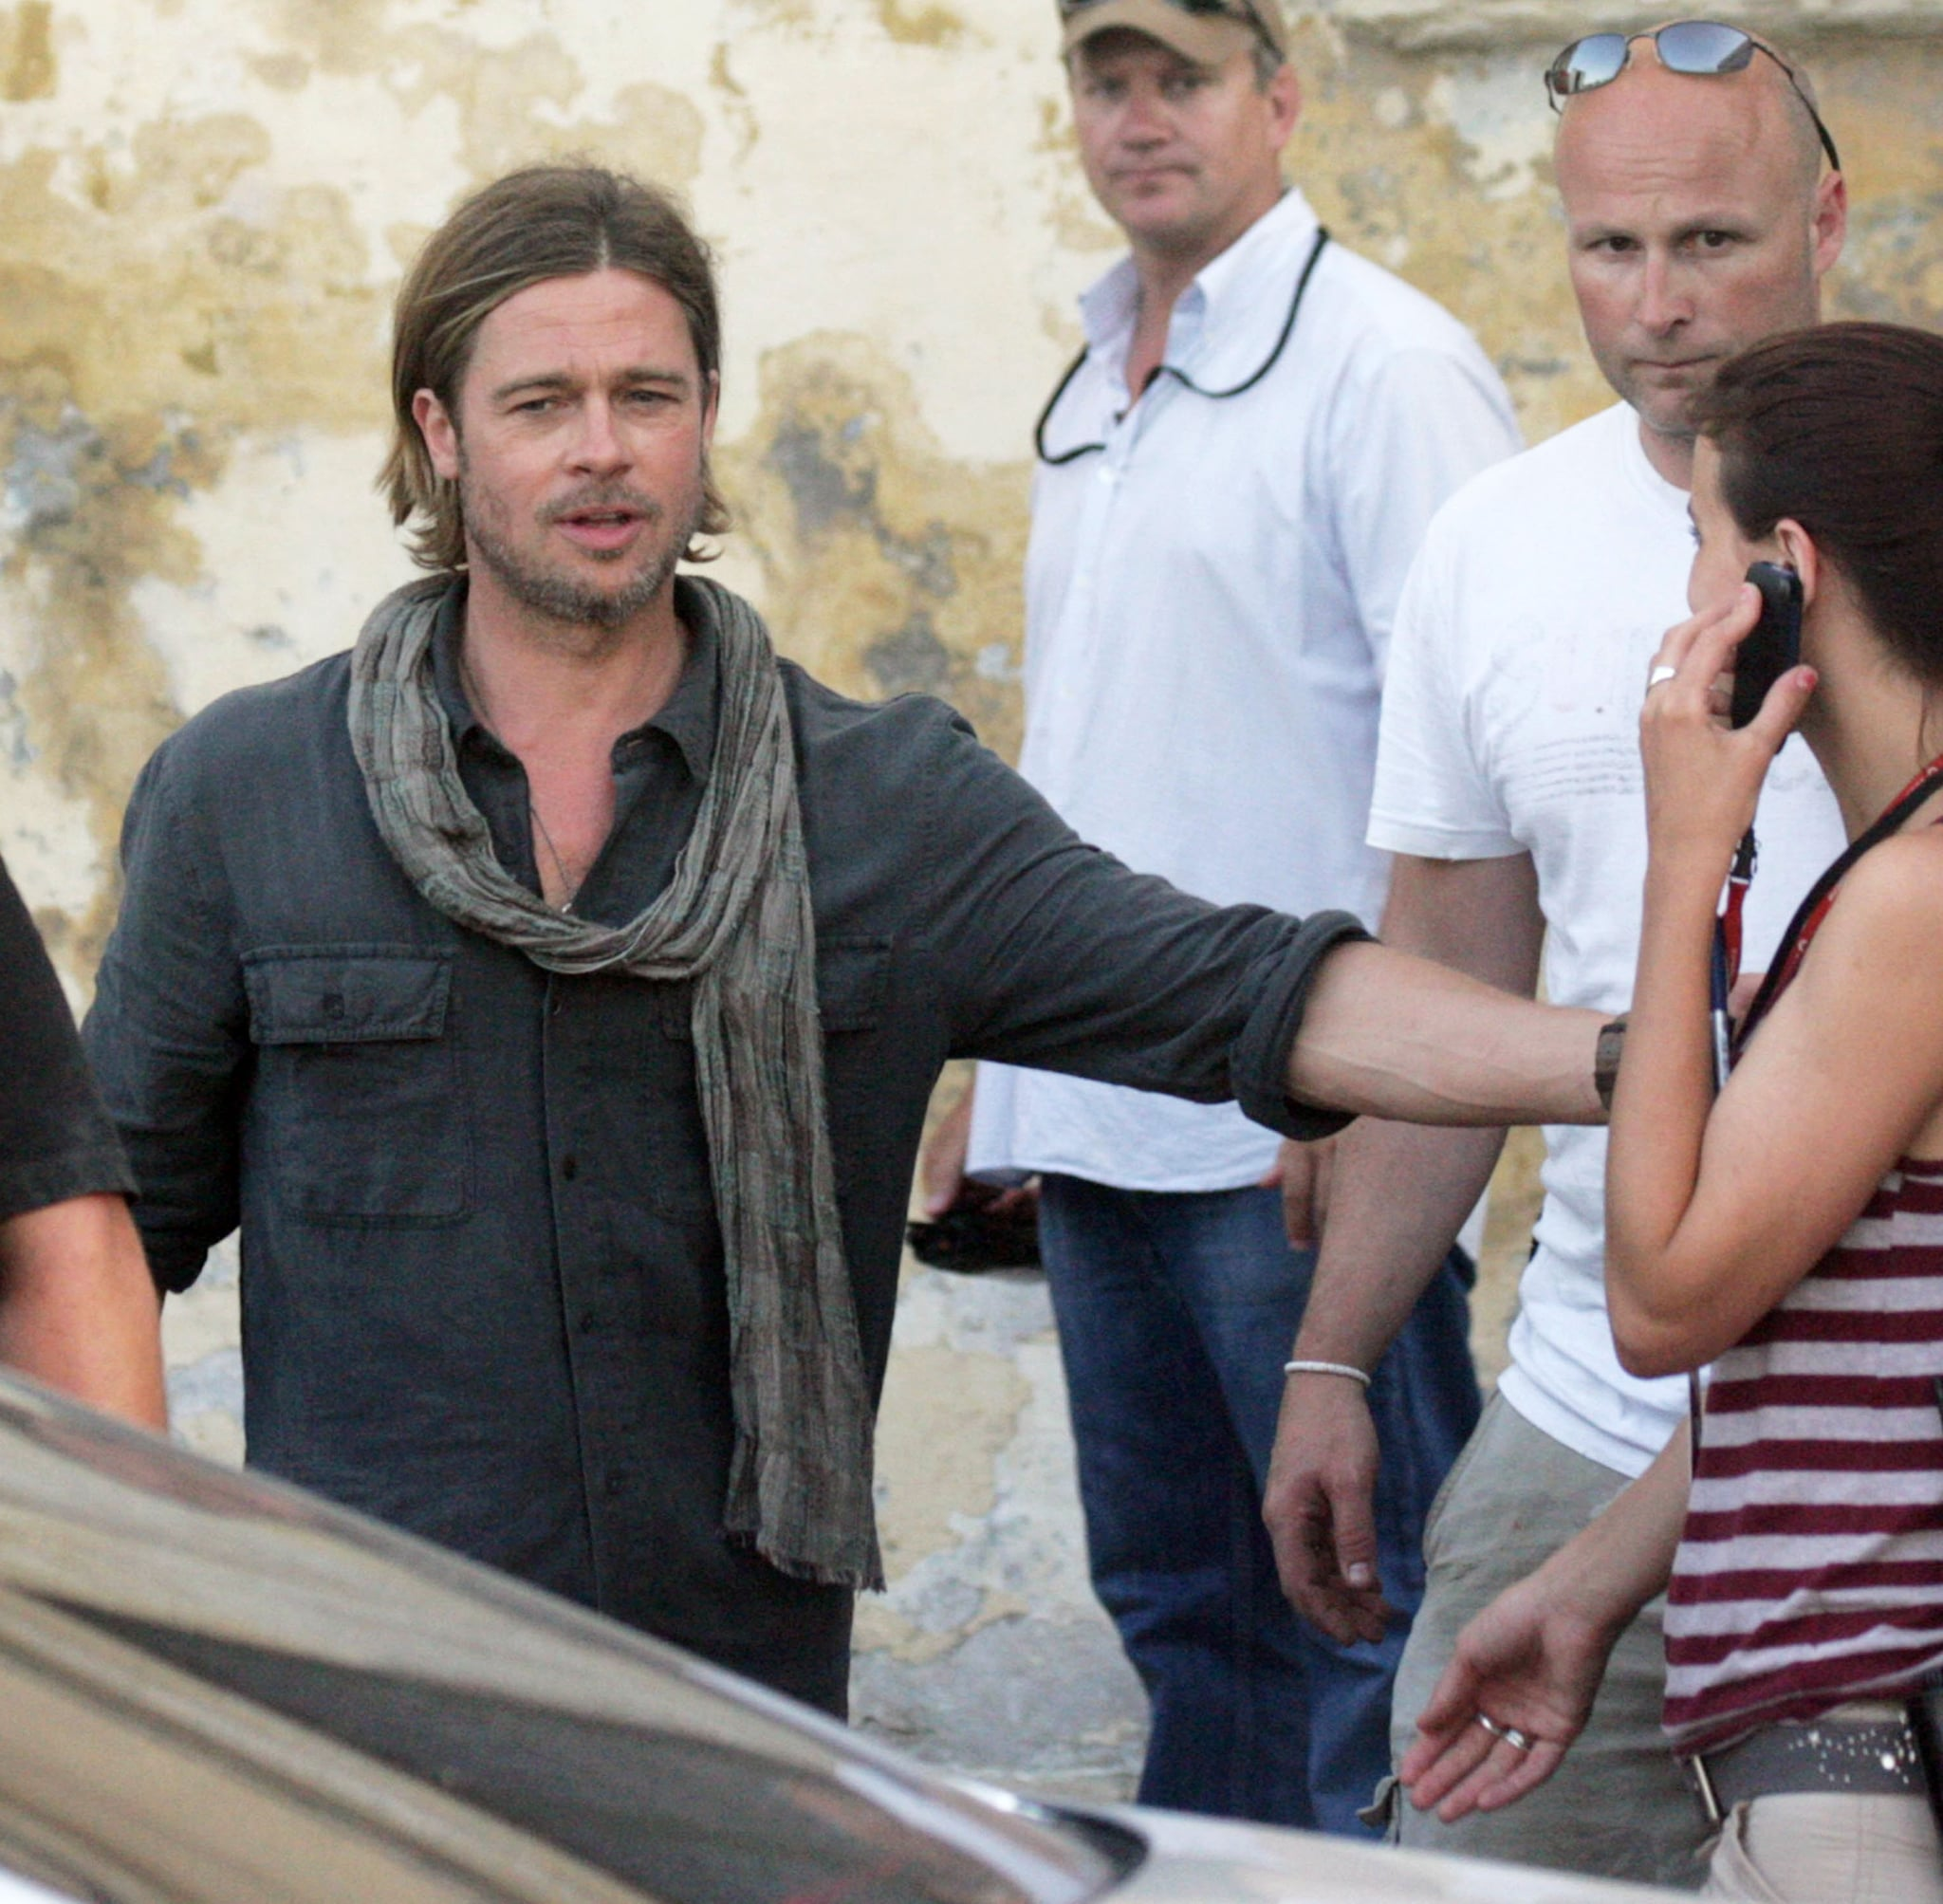 Brad Pitt joked with a co-worker on the set.